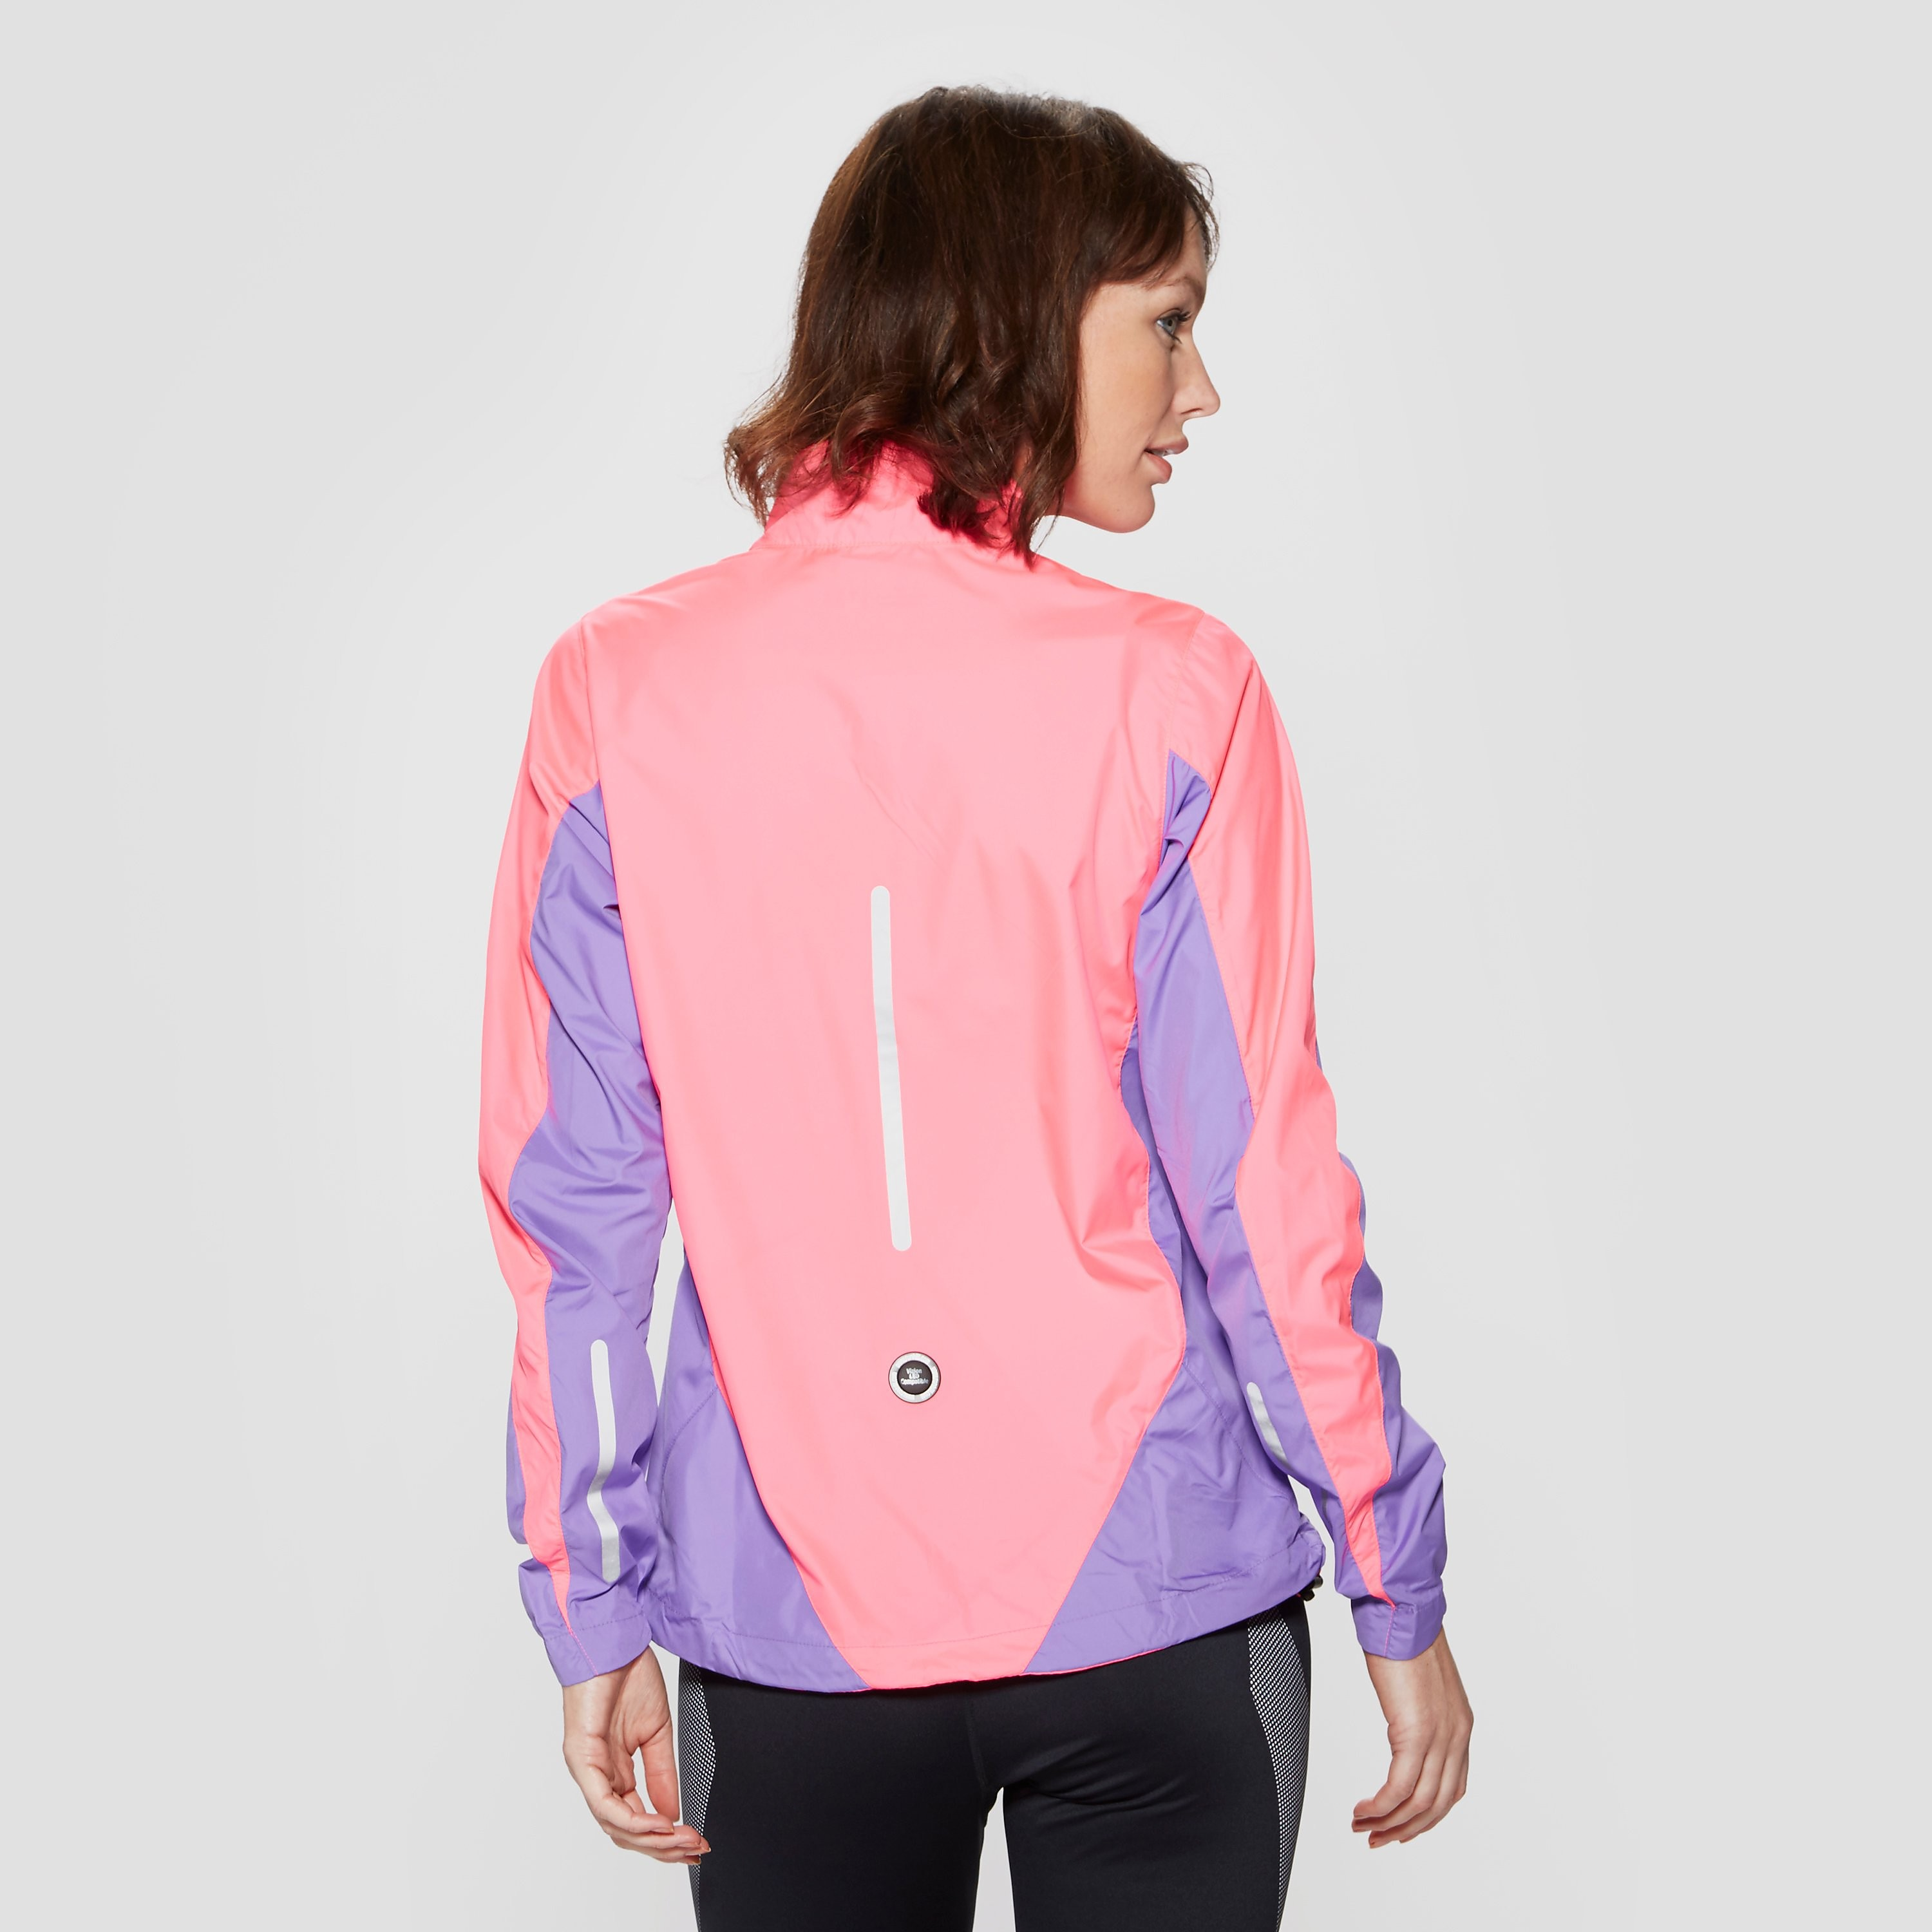 Ronhill Vizion Windlite Women's Running Jacket